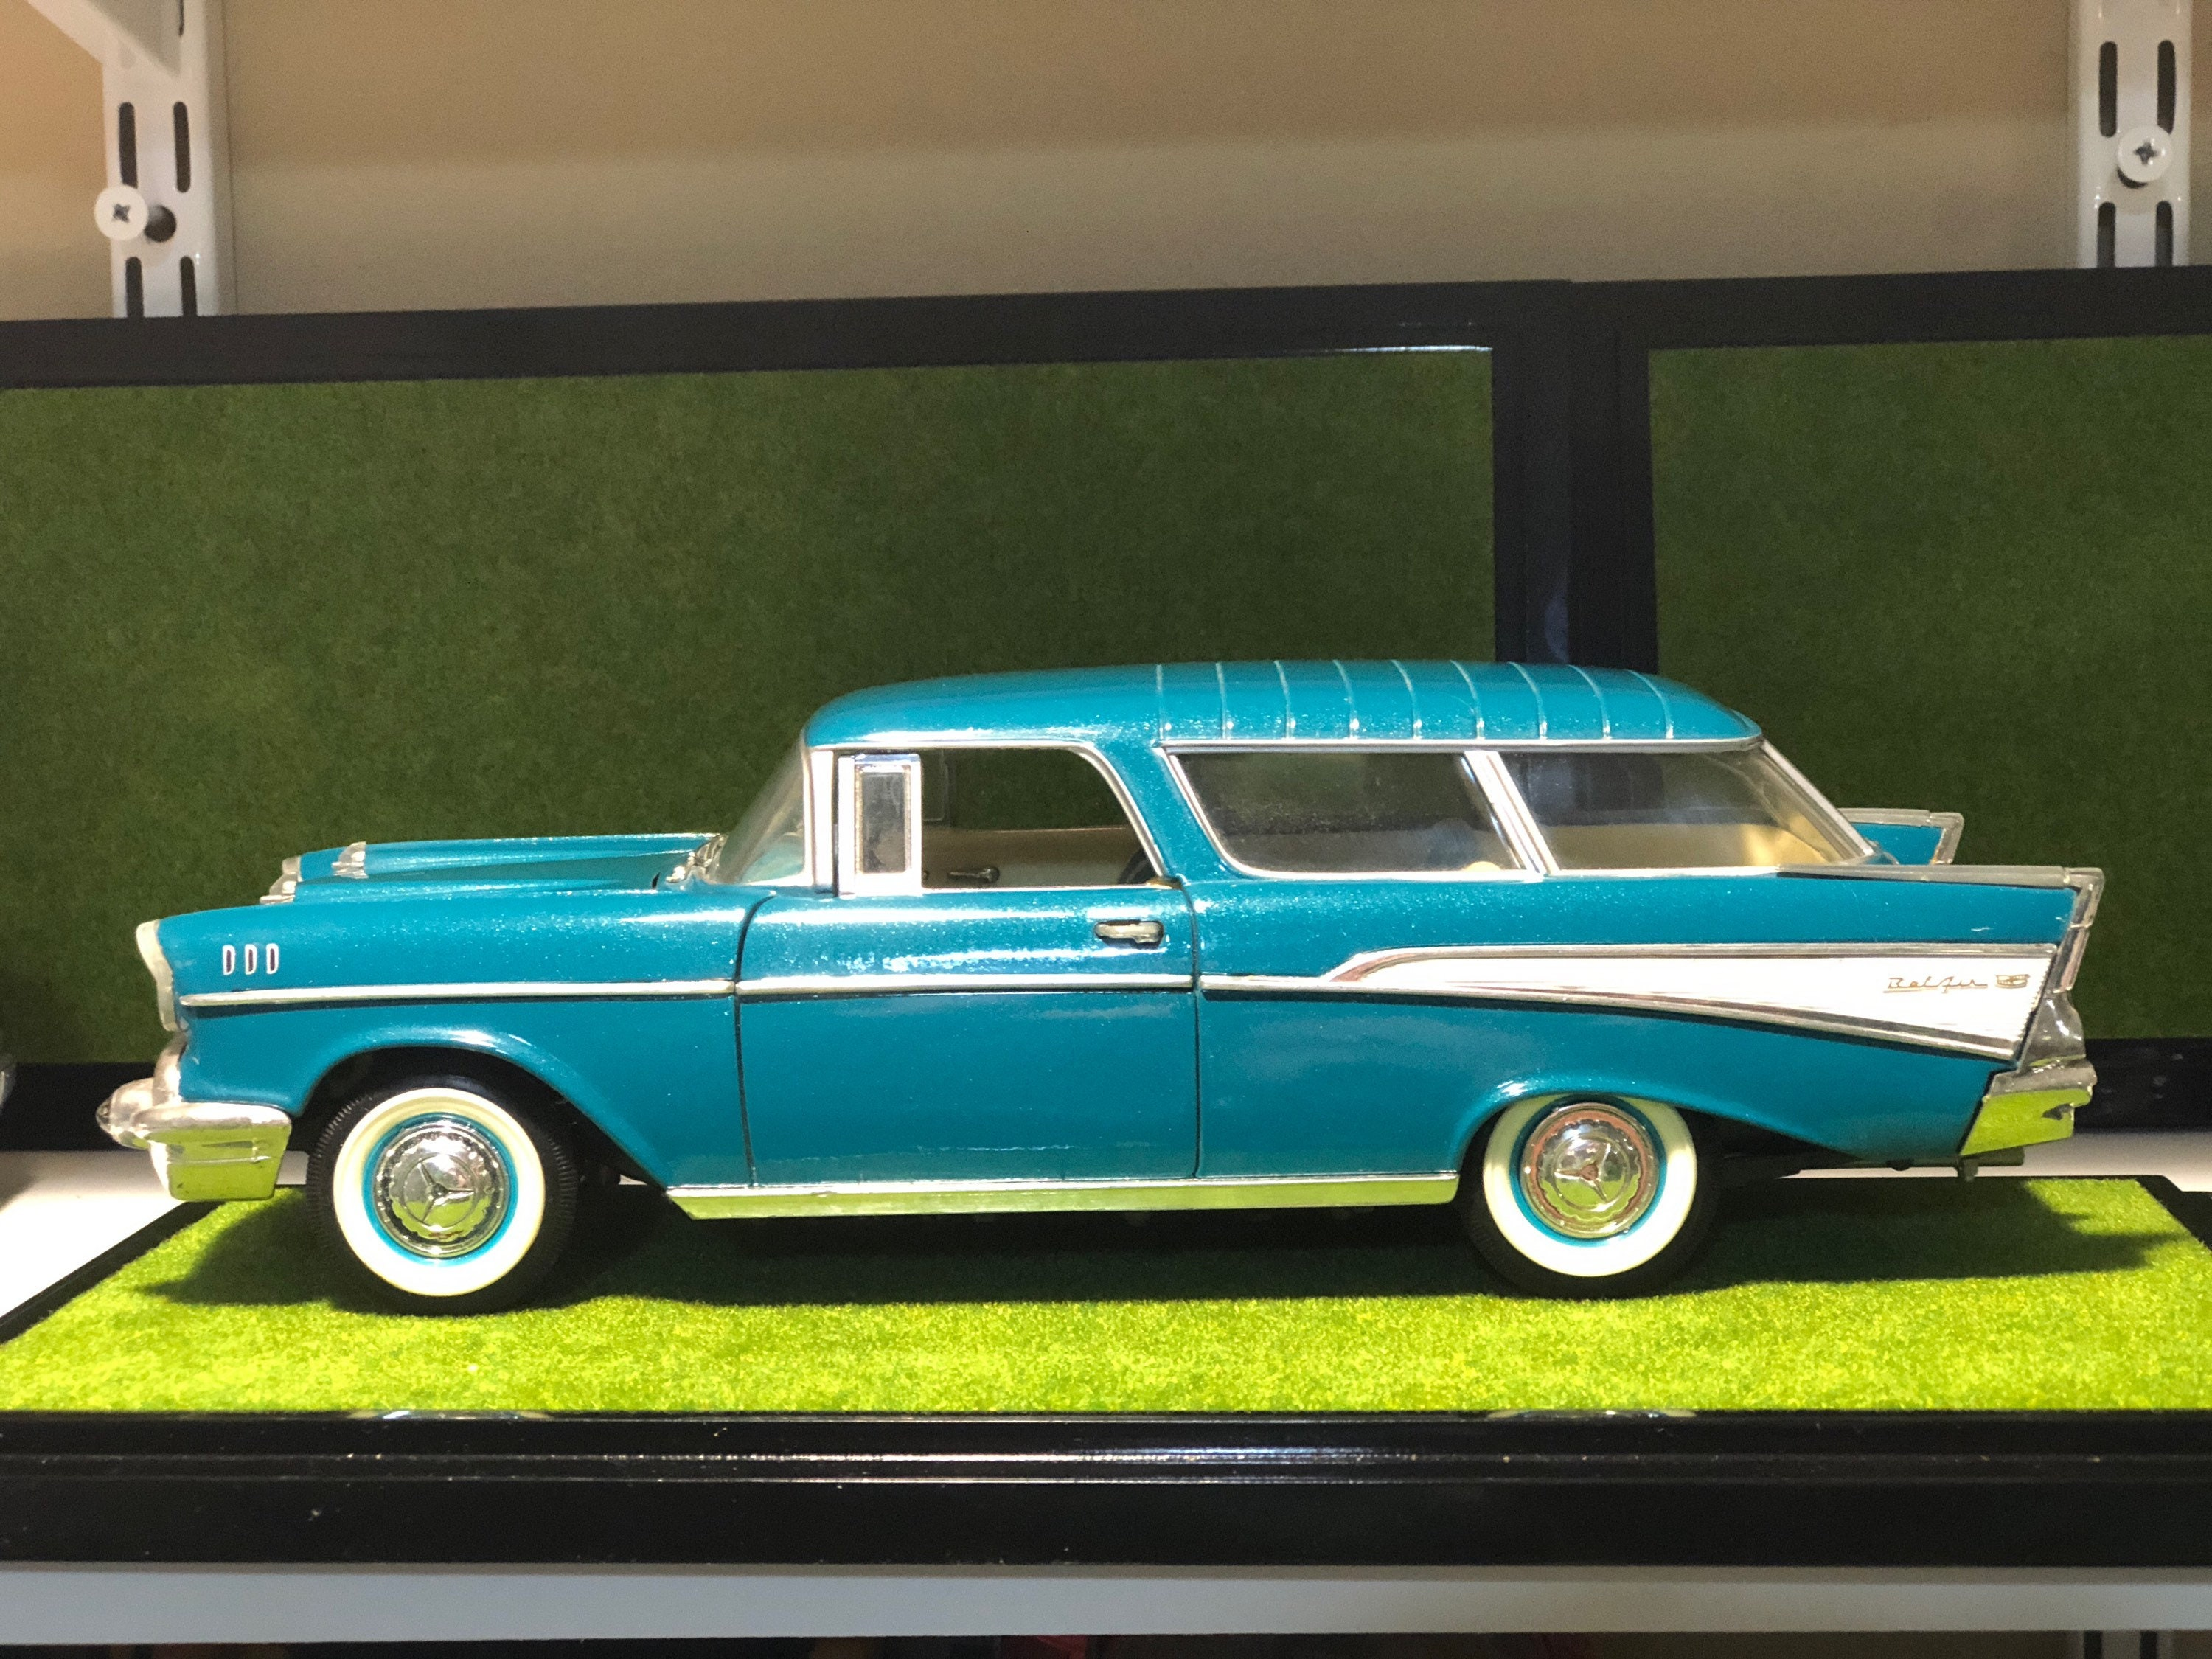 1957 Chevrolet Belair Nomad Station Wagon 1 18 Diecast Car Chevy Zoom